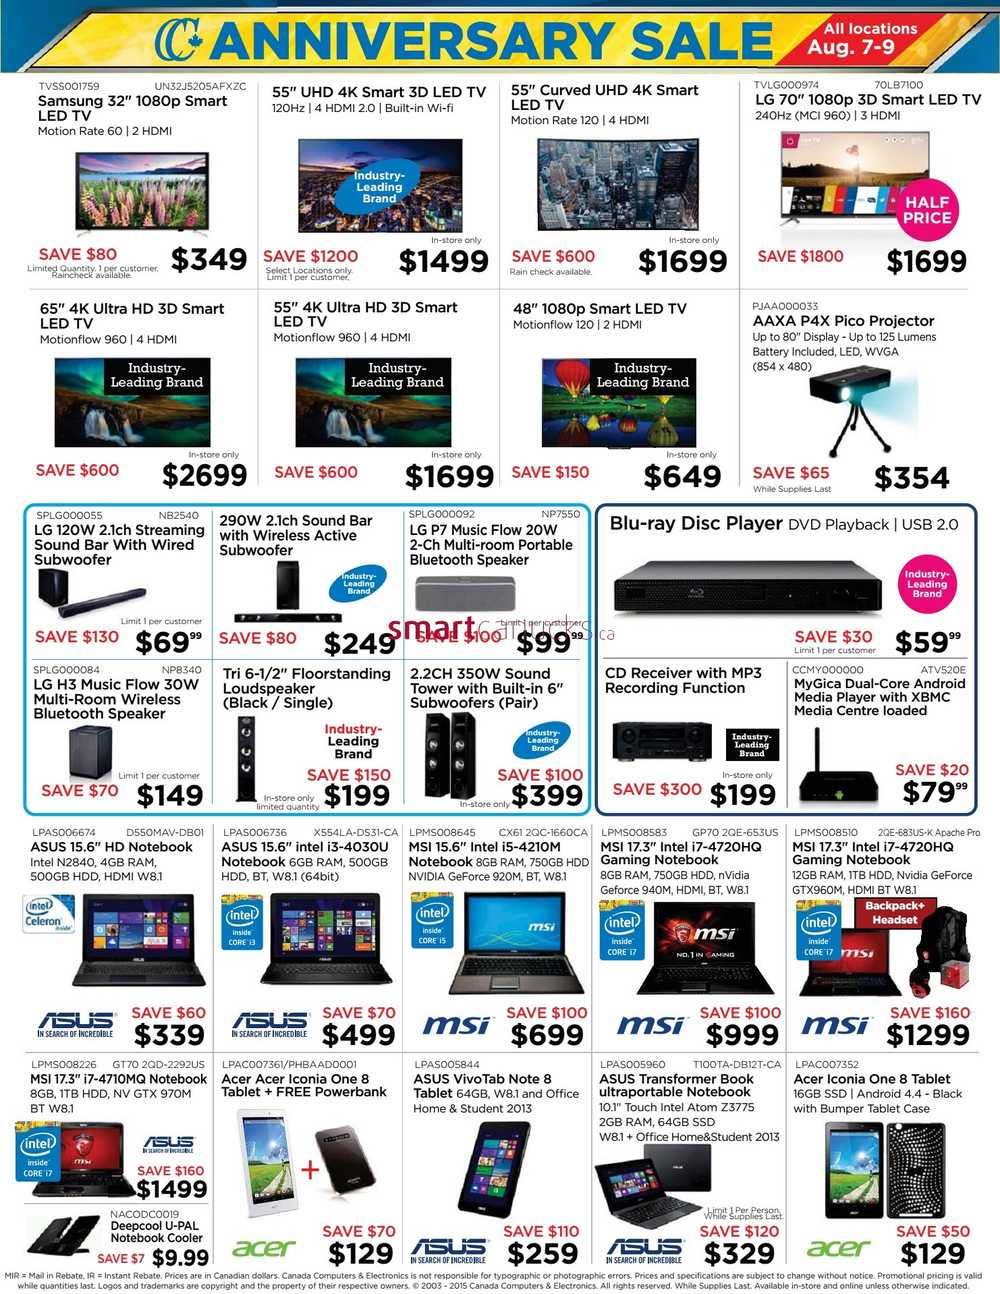 Canada computers anniversary sale flyer august to